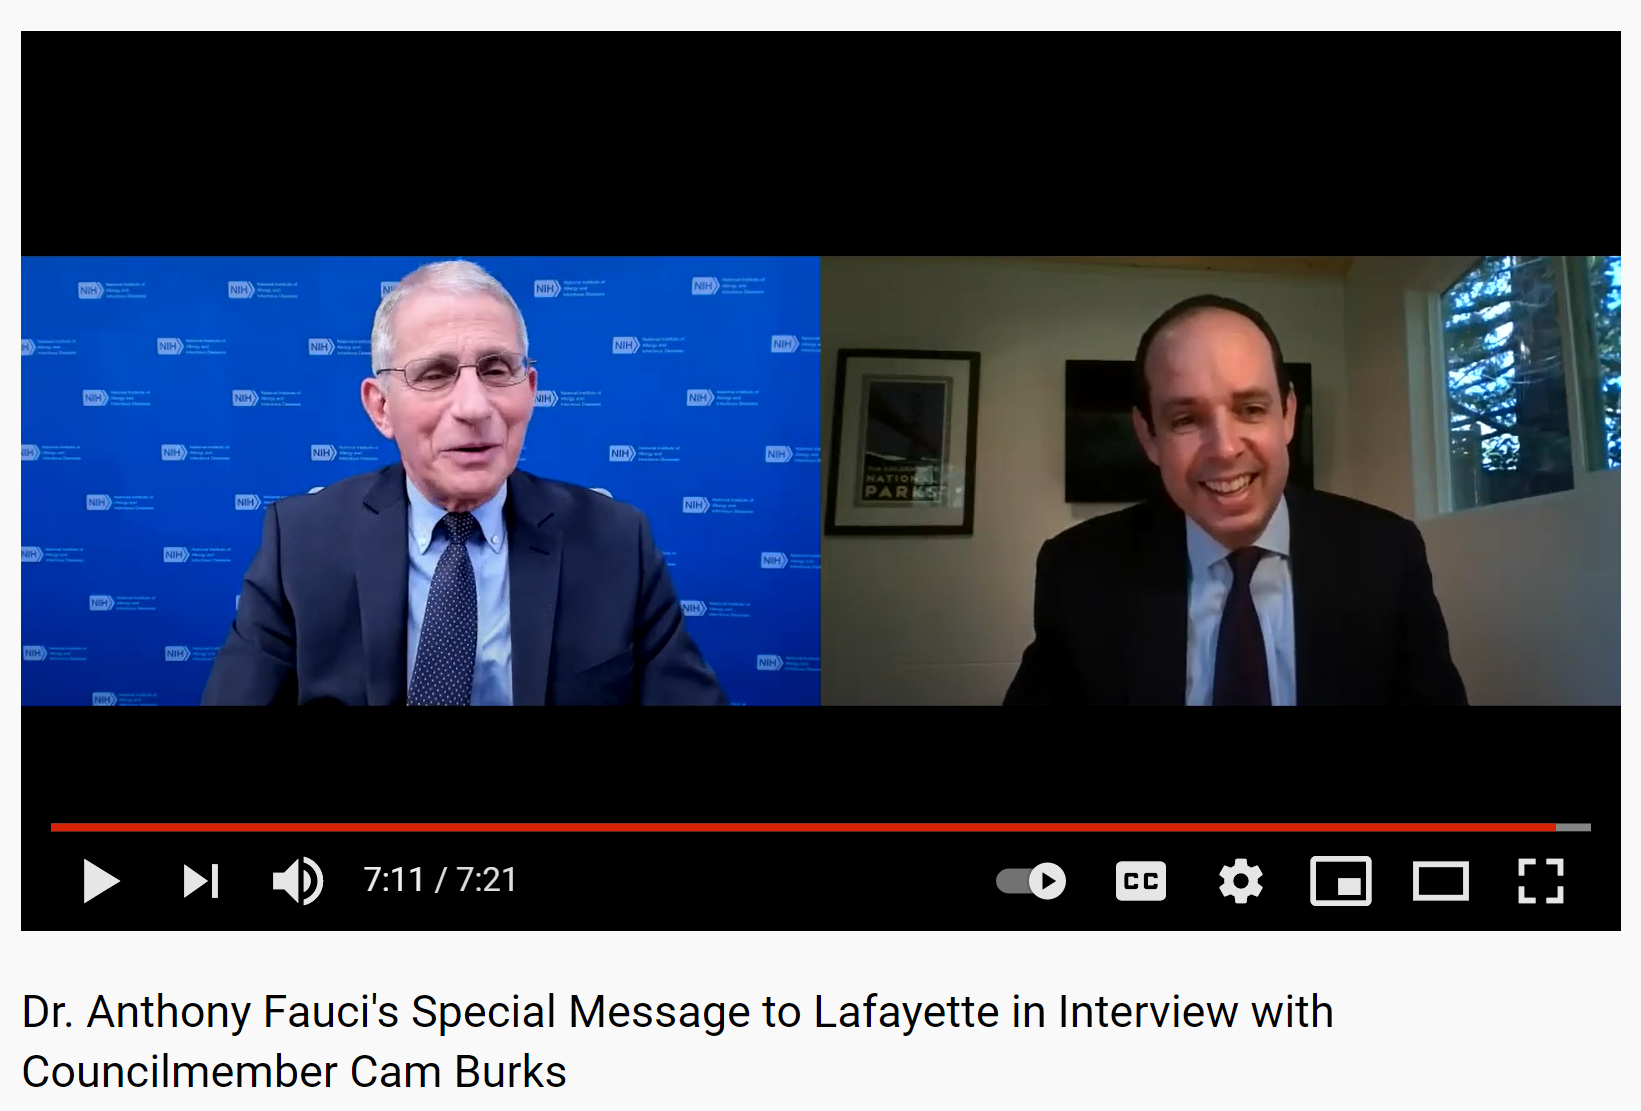 Dr. Anthony Fauci's Special Message to Lafayette in Interview with Councilmember Cam Burks